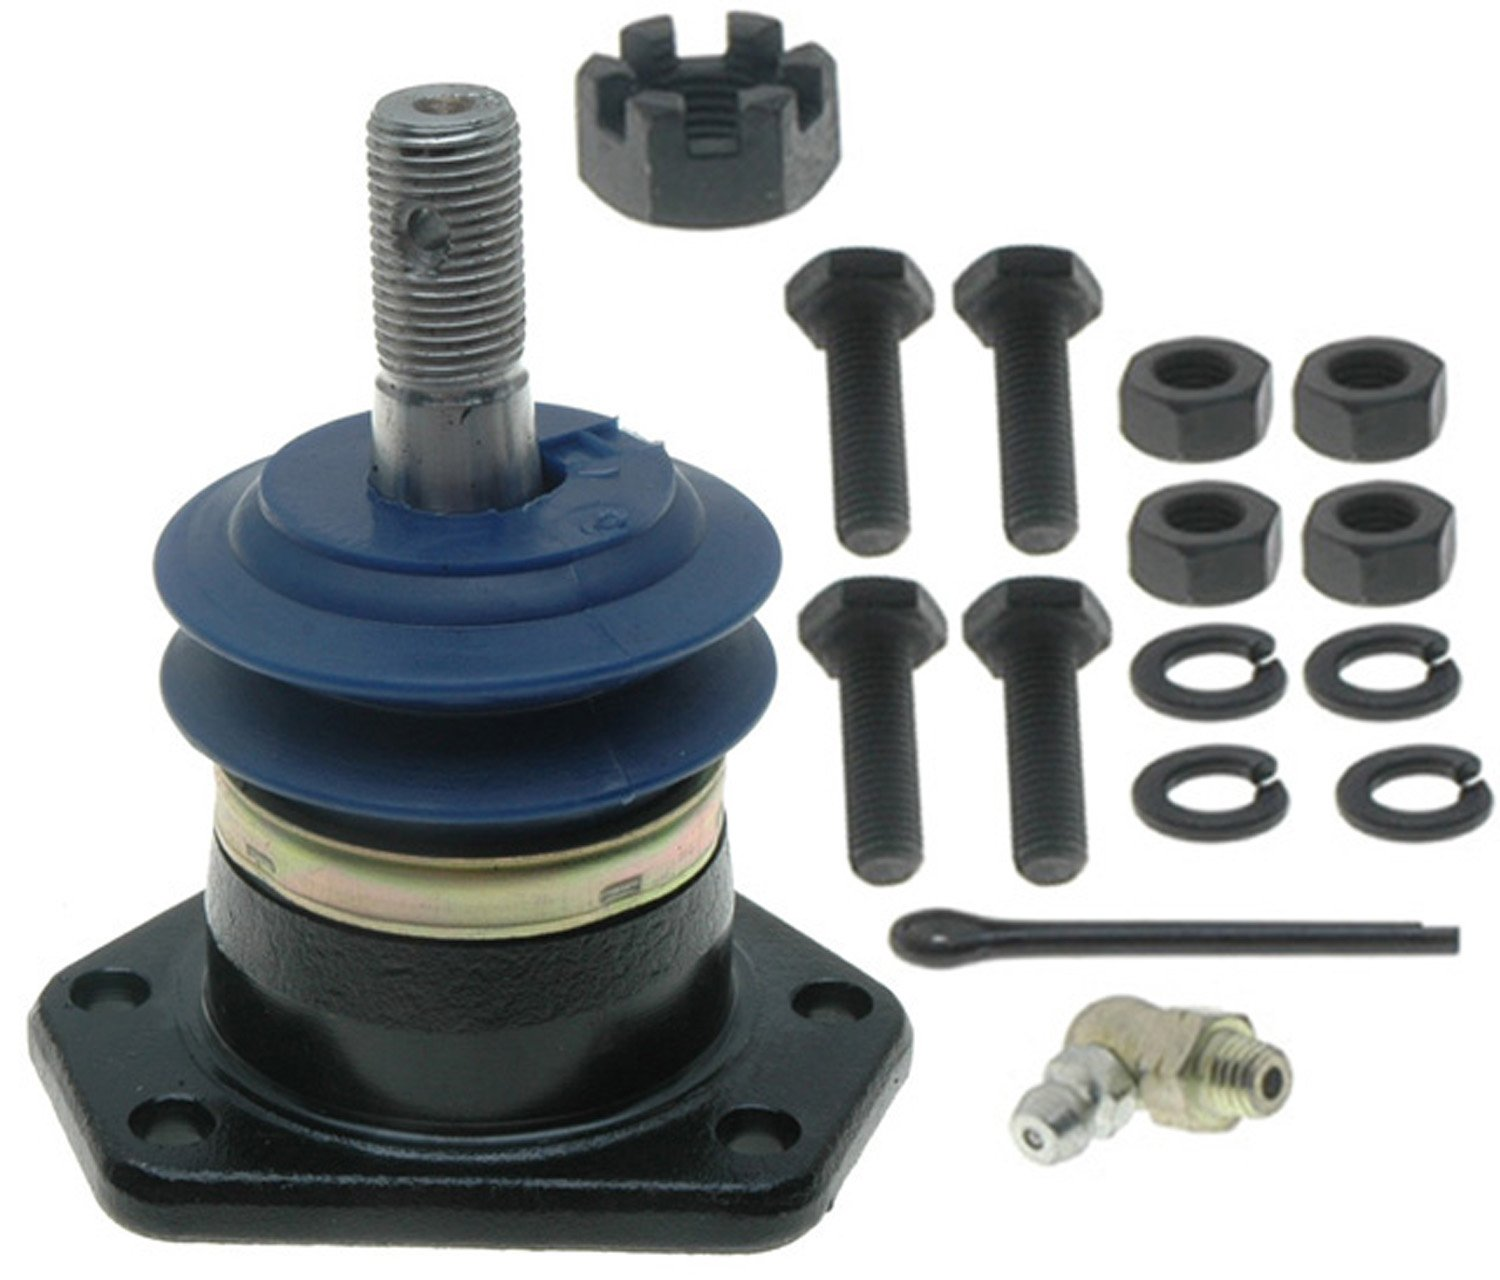 Acdelco 45d0016 Professional Front Upper Suspension Ball Joint Gmc Envoy Assembly Well Wreapped